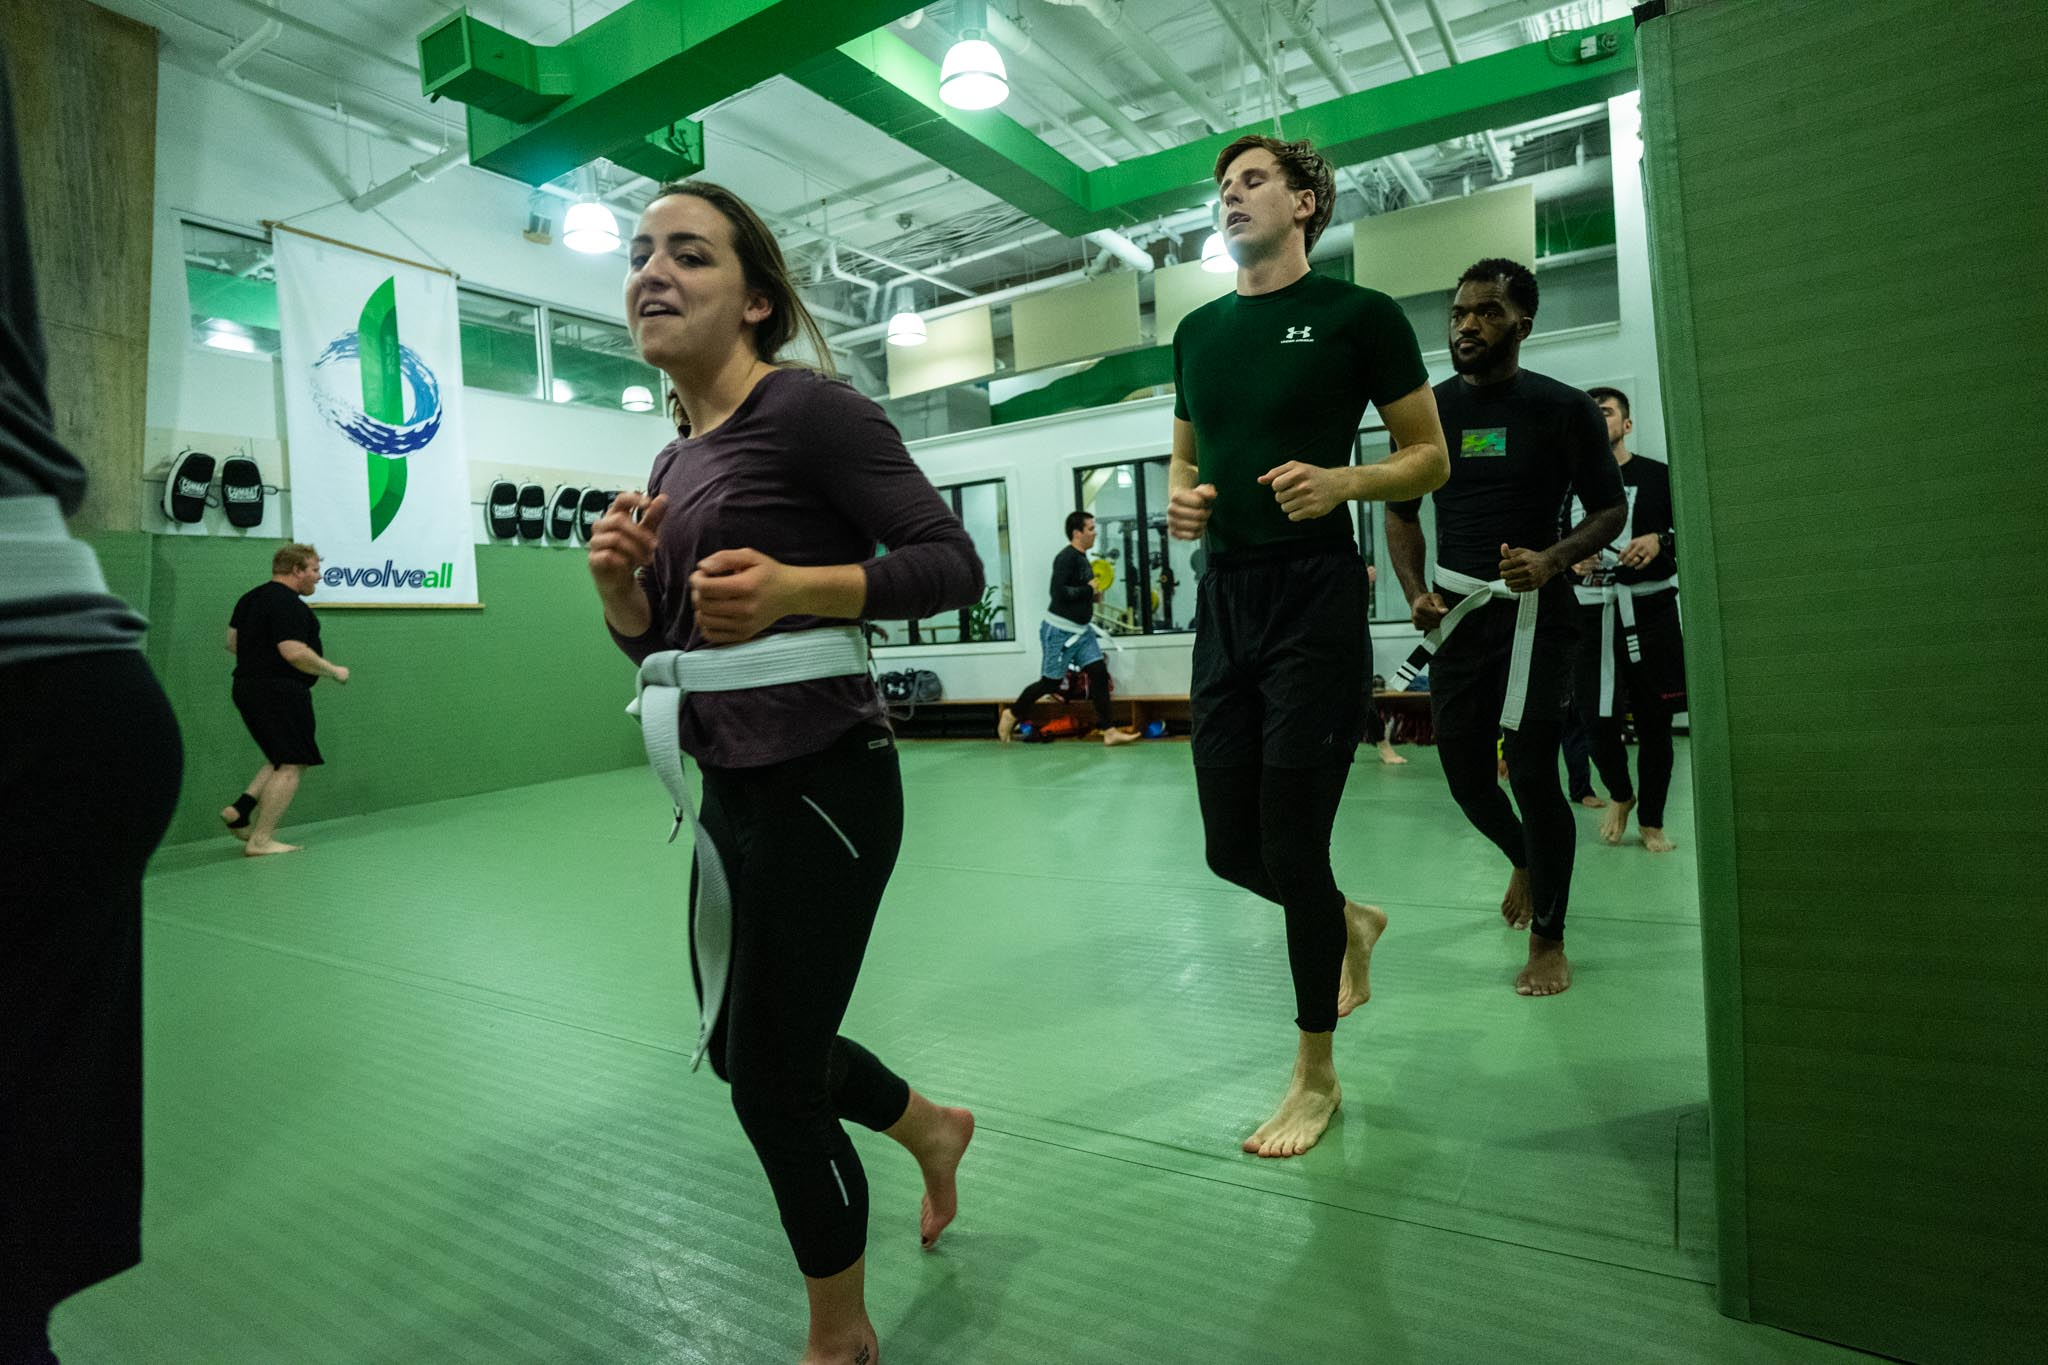 Jiu Jitsu Classes in Arlington Virginia